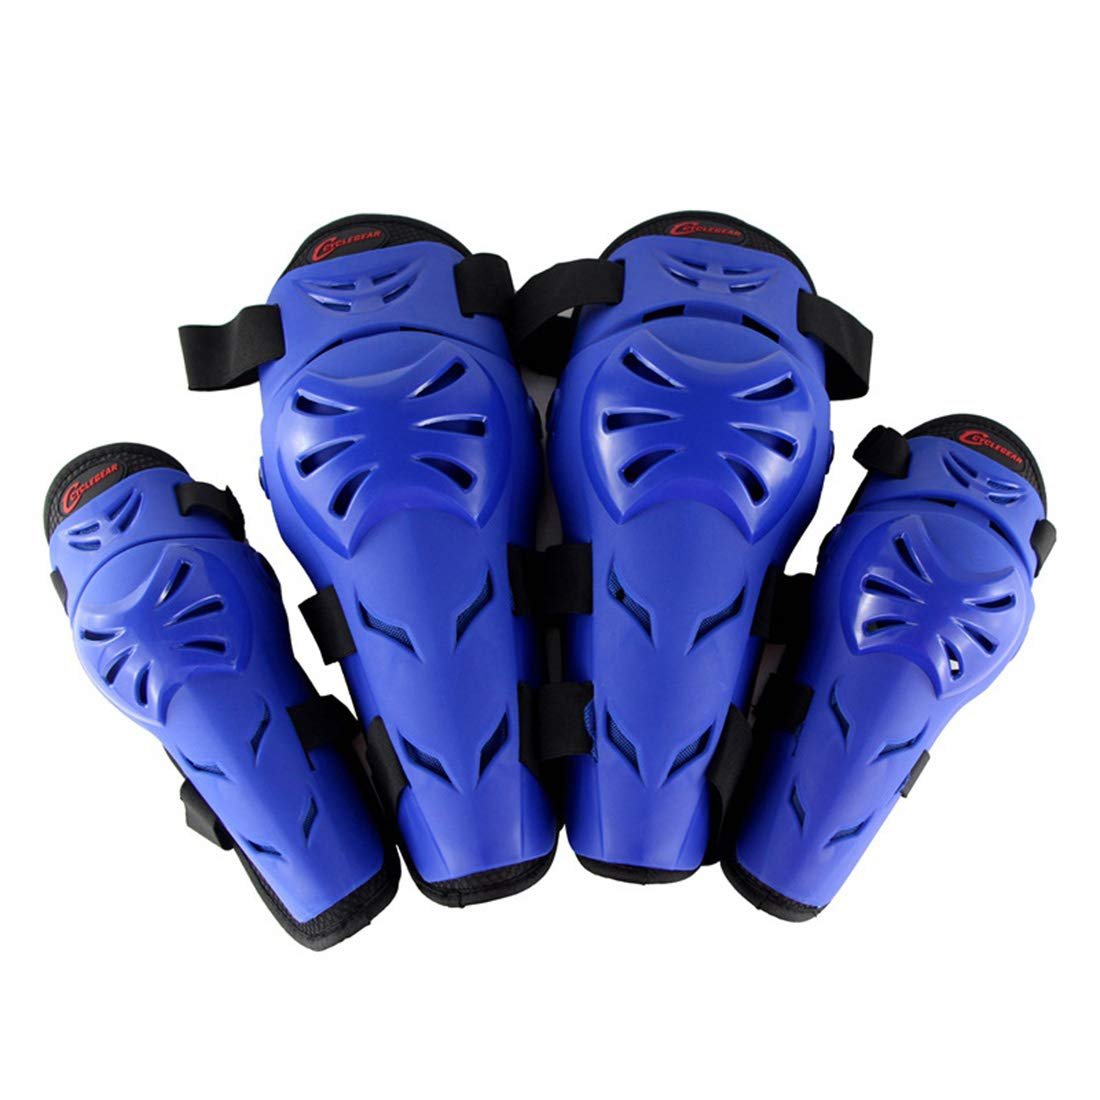 bluee ERSD Motorcycle Motocross Cycling Elbow And Knee Pads Predector Guard Armors Set for Riding Cycling Skating4pcs Support sport Professional Soft Multifunction Quality Work Out Safety (color   Red)